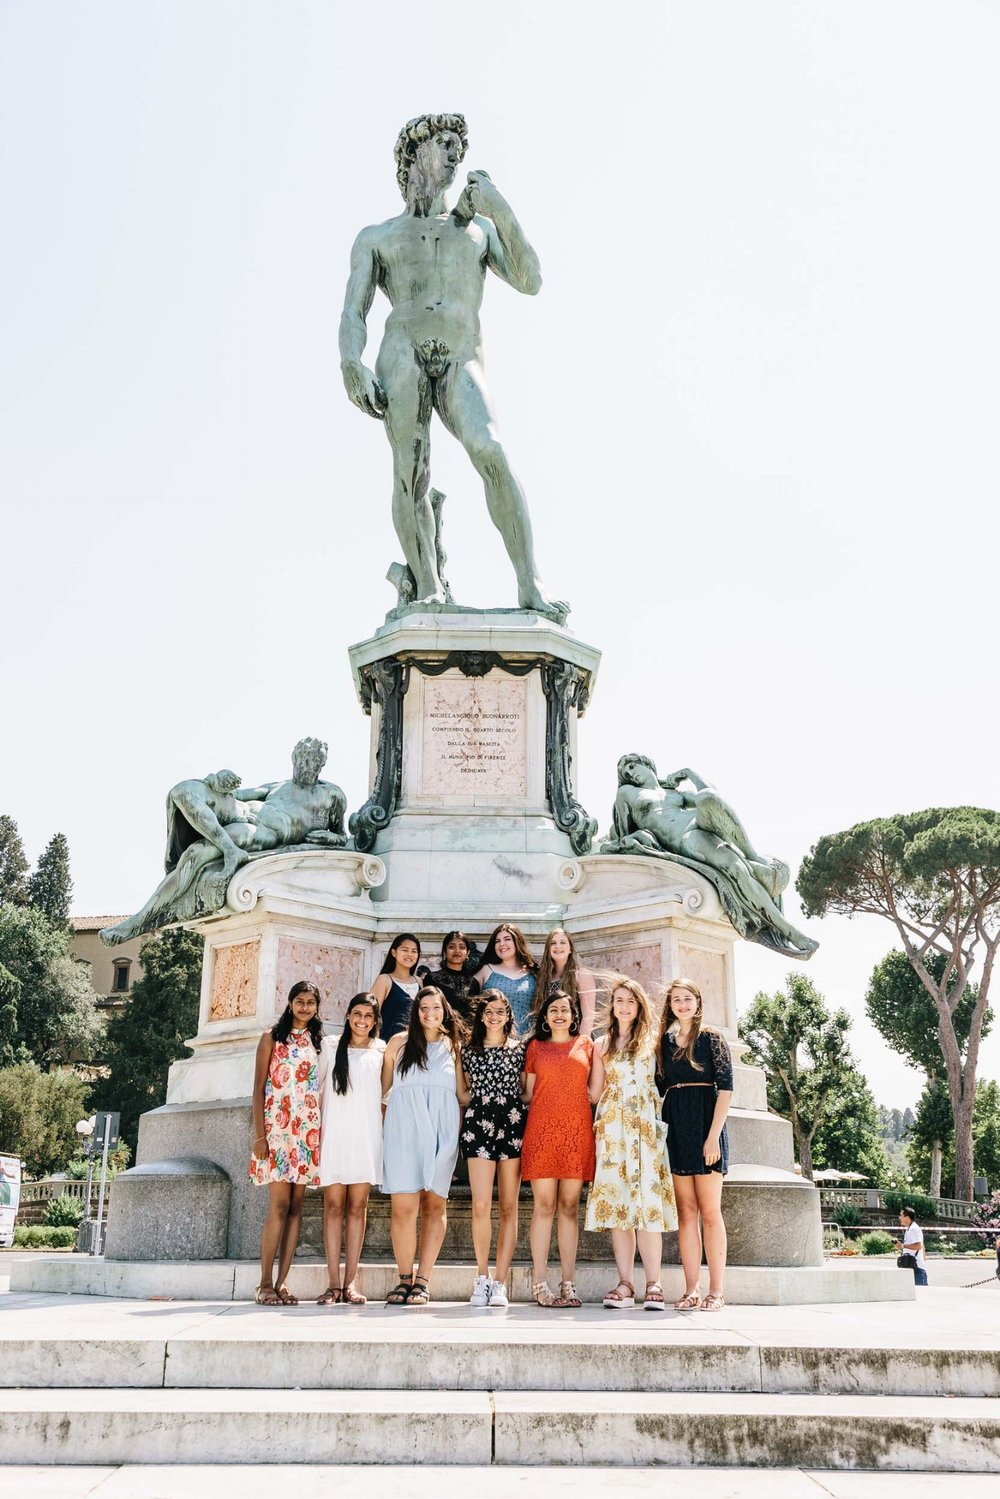 Check out this fun Girl Scouts trip to Florence ten years in the making on the Flytographer blog! | Travel + Vacation Photographer | Family Vacations | Engagement Proposals | Honeymoons | Anniversary Gifts | Bachelorette Ideas | Solo Traveller Tips |  Flytographer captures your travel memories - everything from surprise proposals, honeymoons, family vacations, and more. So often you are missing out of your own photos! Flytographer solves that problem for you. Our photographers also act as informal tour guides and provide fun local tips to our customers, showing them an area of a city they may not have explored without Flytographer. Book your photographer at 1.888.211.7178 or visit our website at www.flytographer.com/book